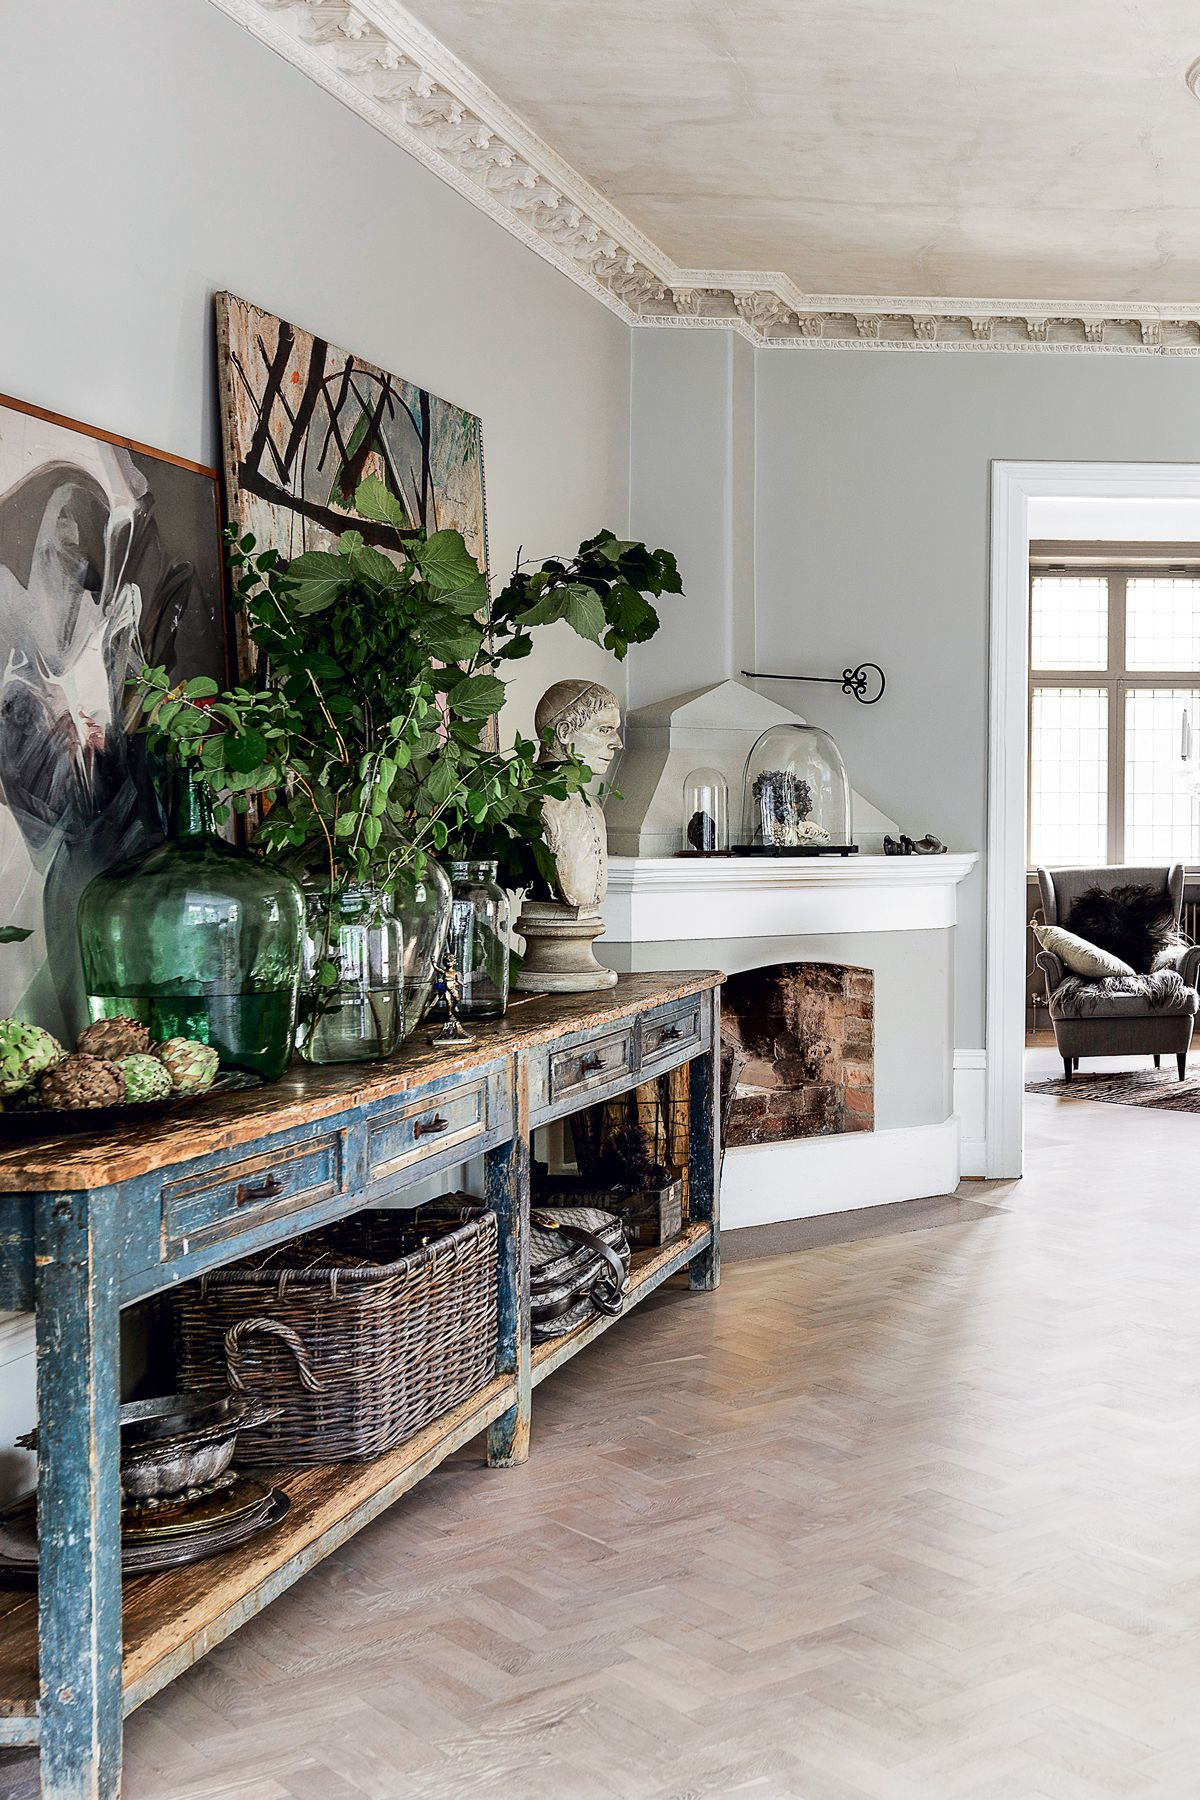 This Stunning Family Home Is A Little Bit Rustic, A